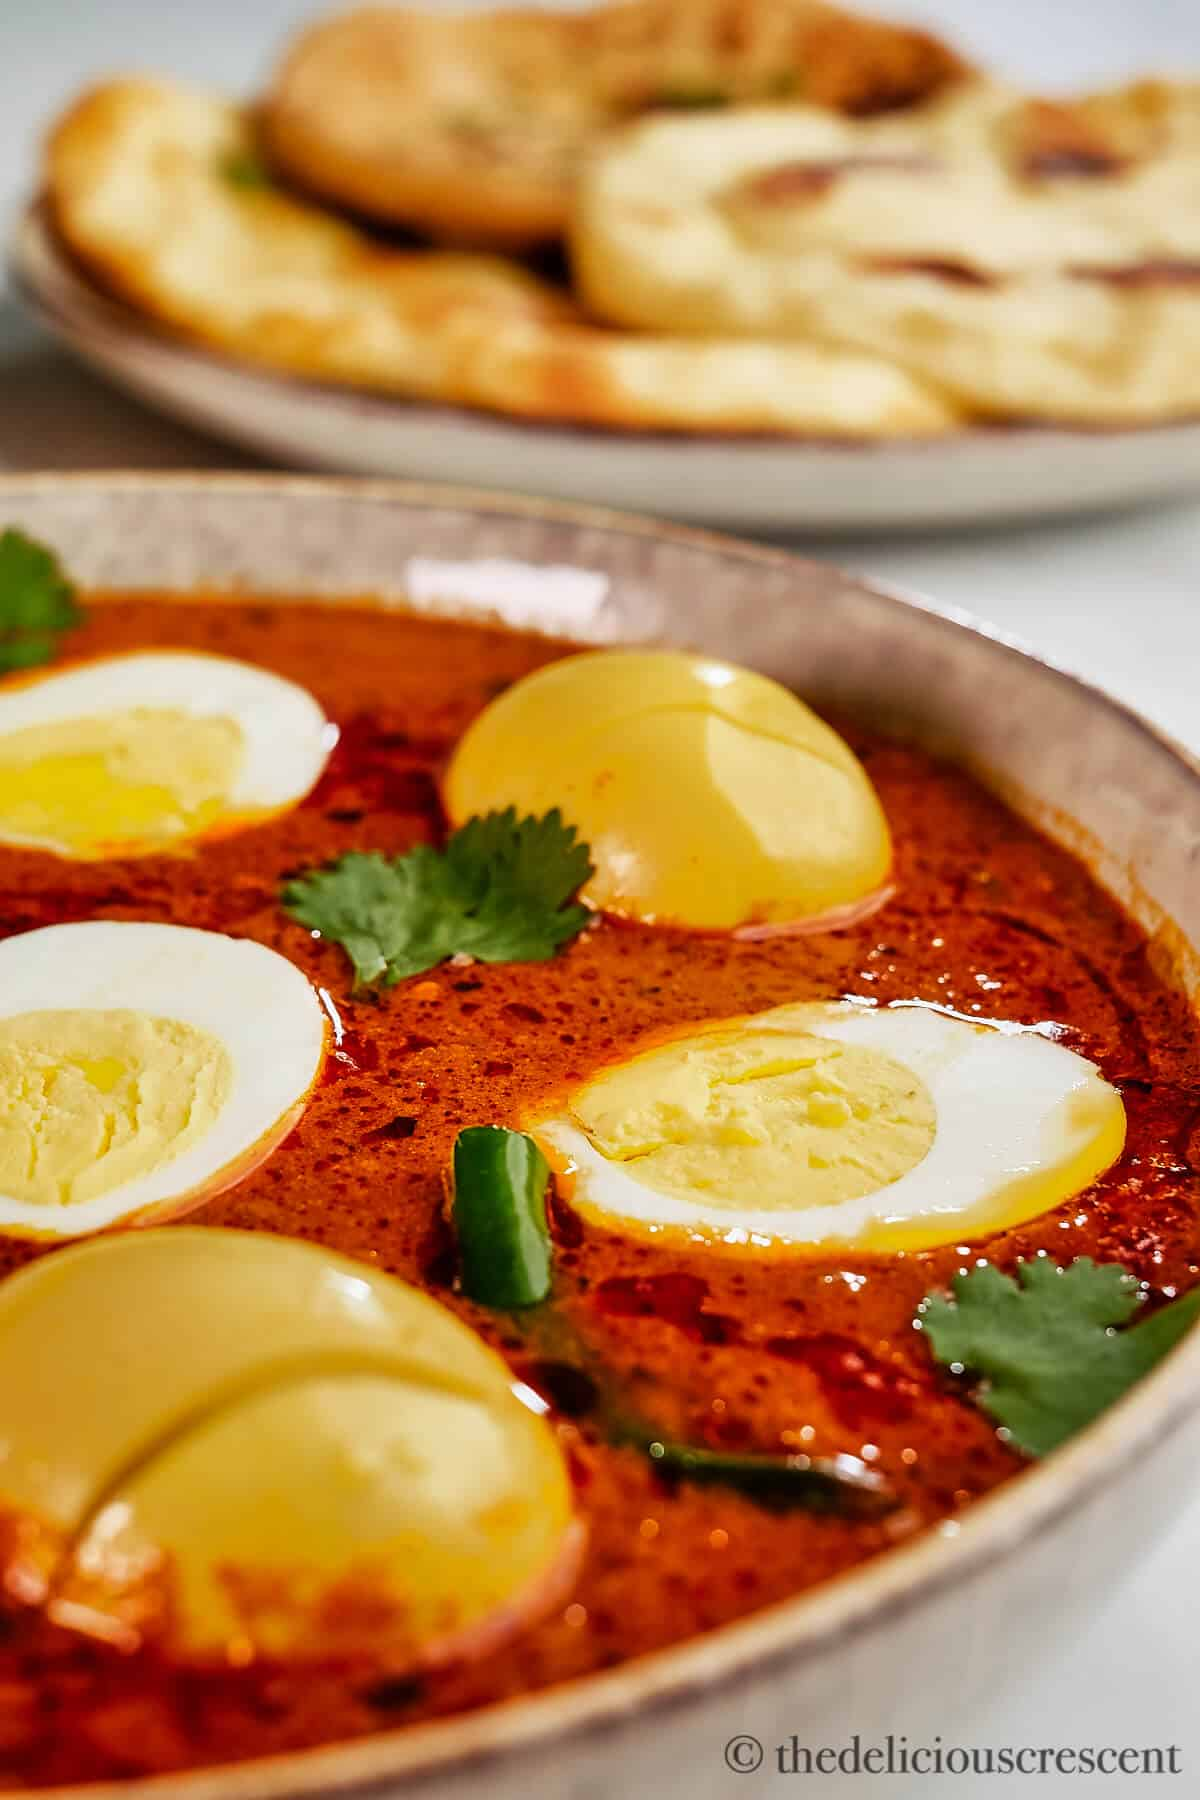 Close up view of eggs in a tomato and onion sauce.